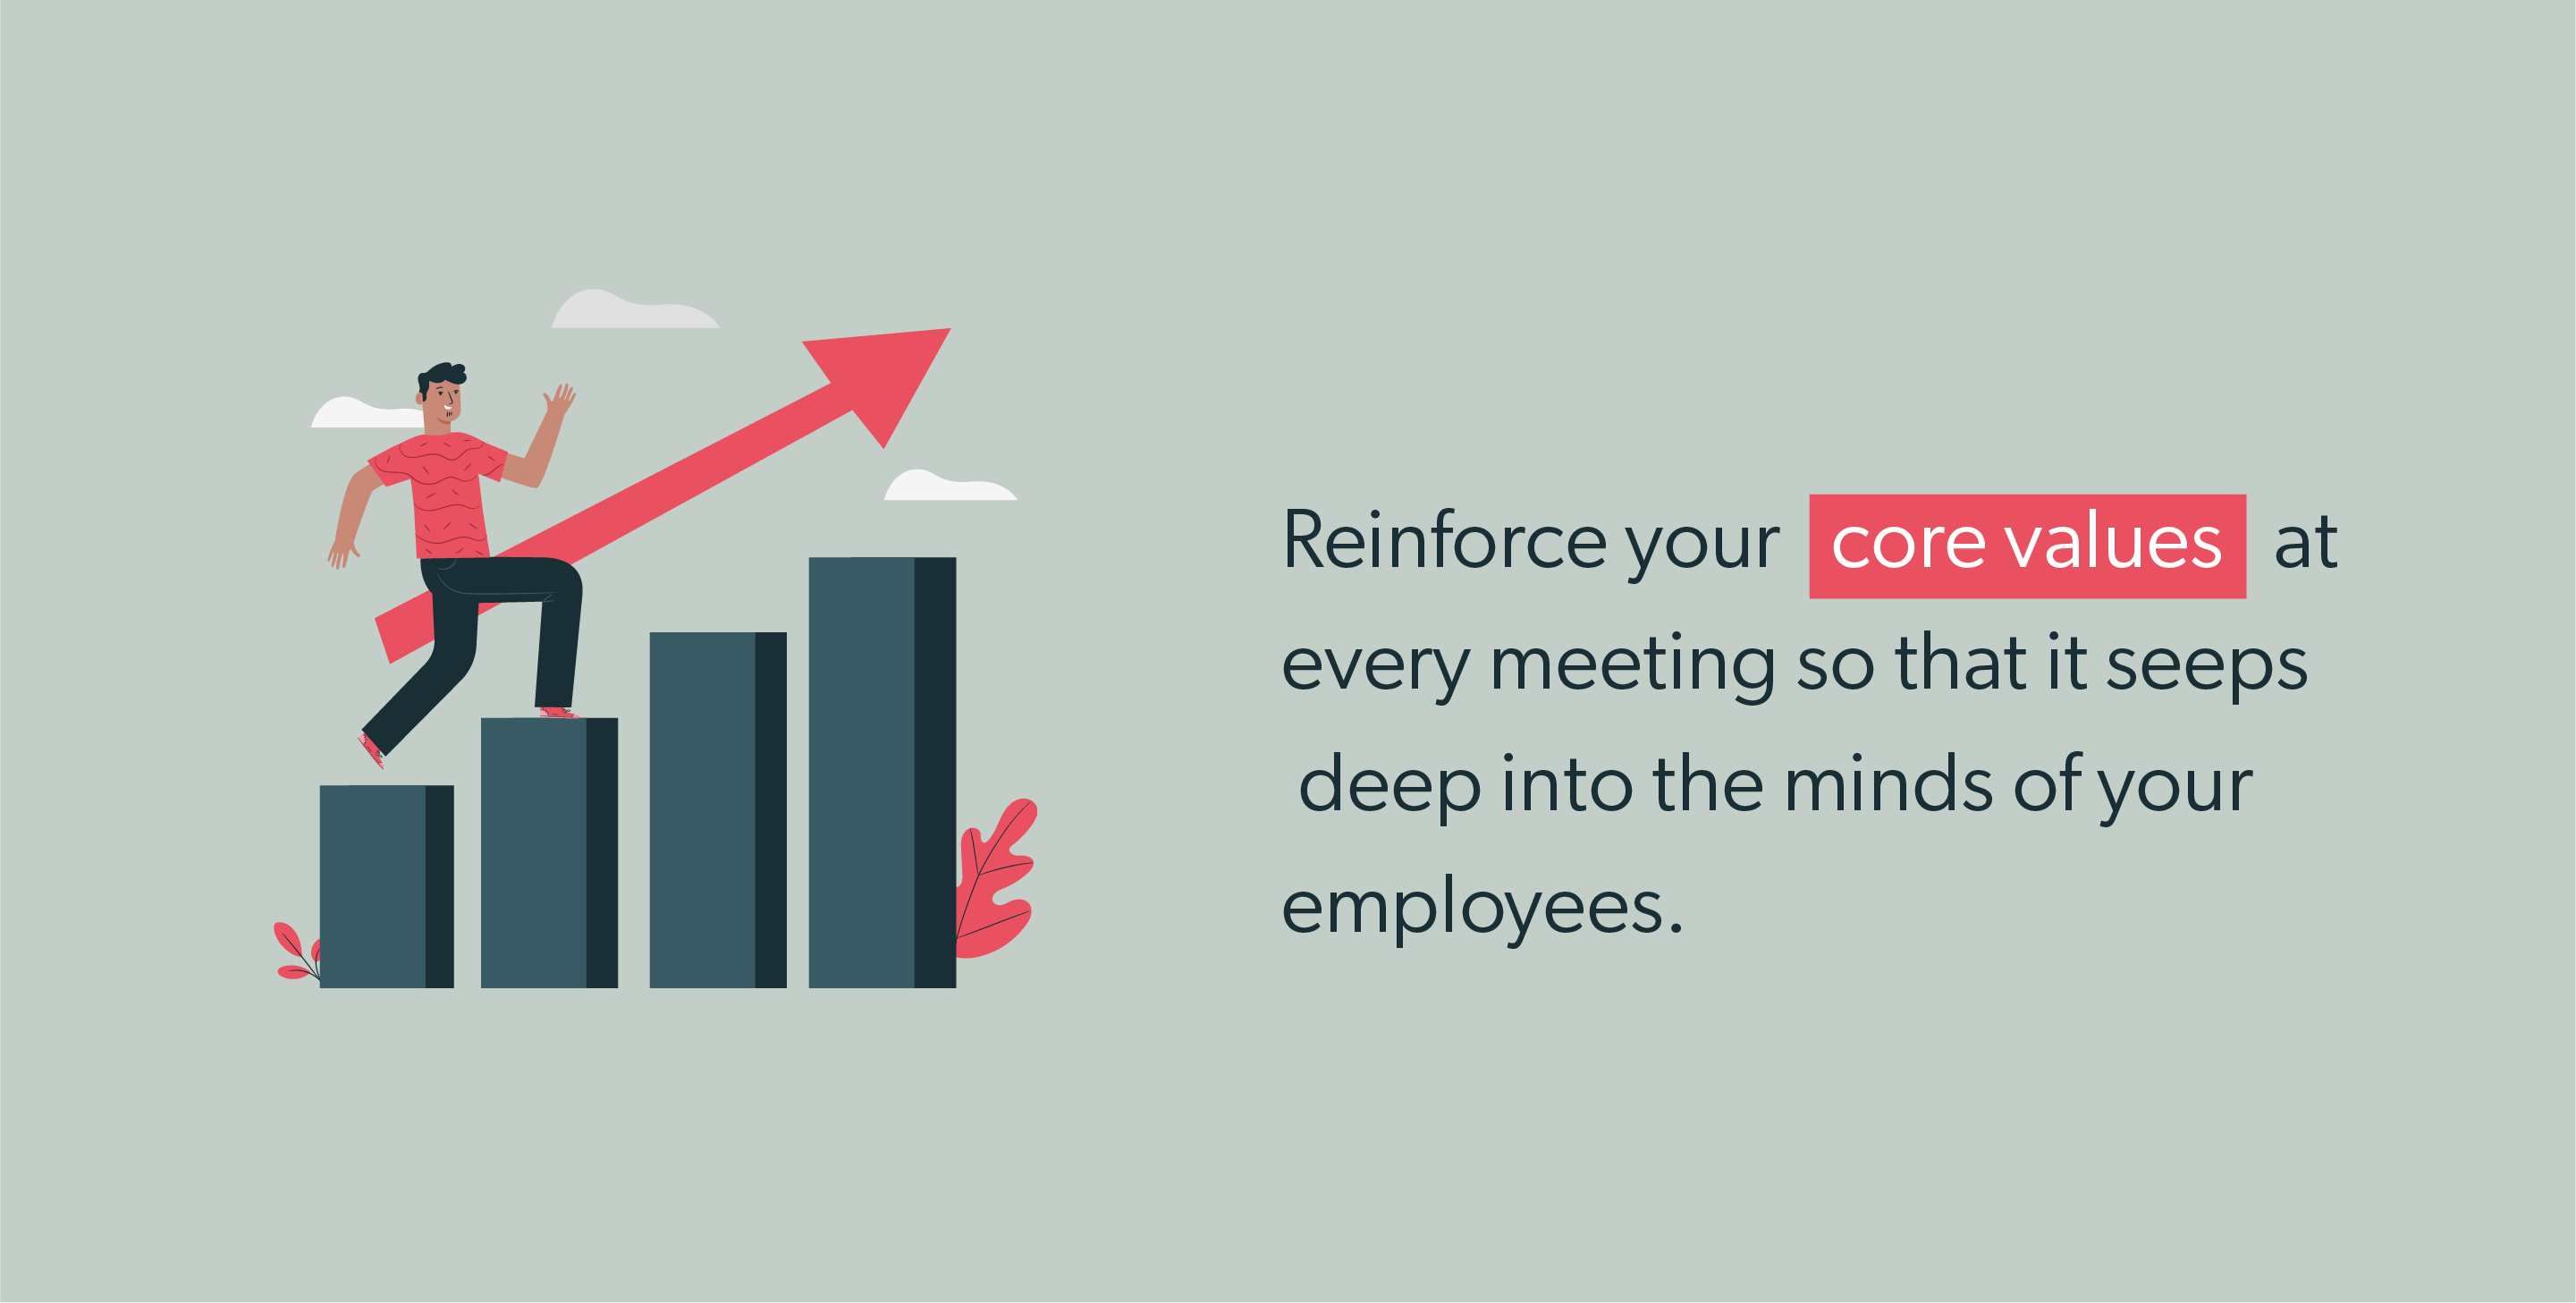 Reinforce your core values at every meeting so that it seeps deep into the minds of your employees.